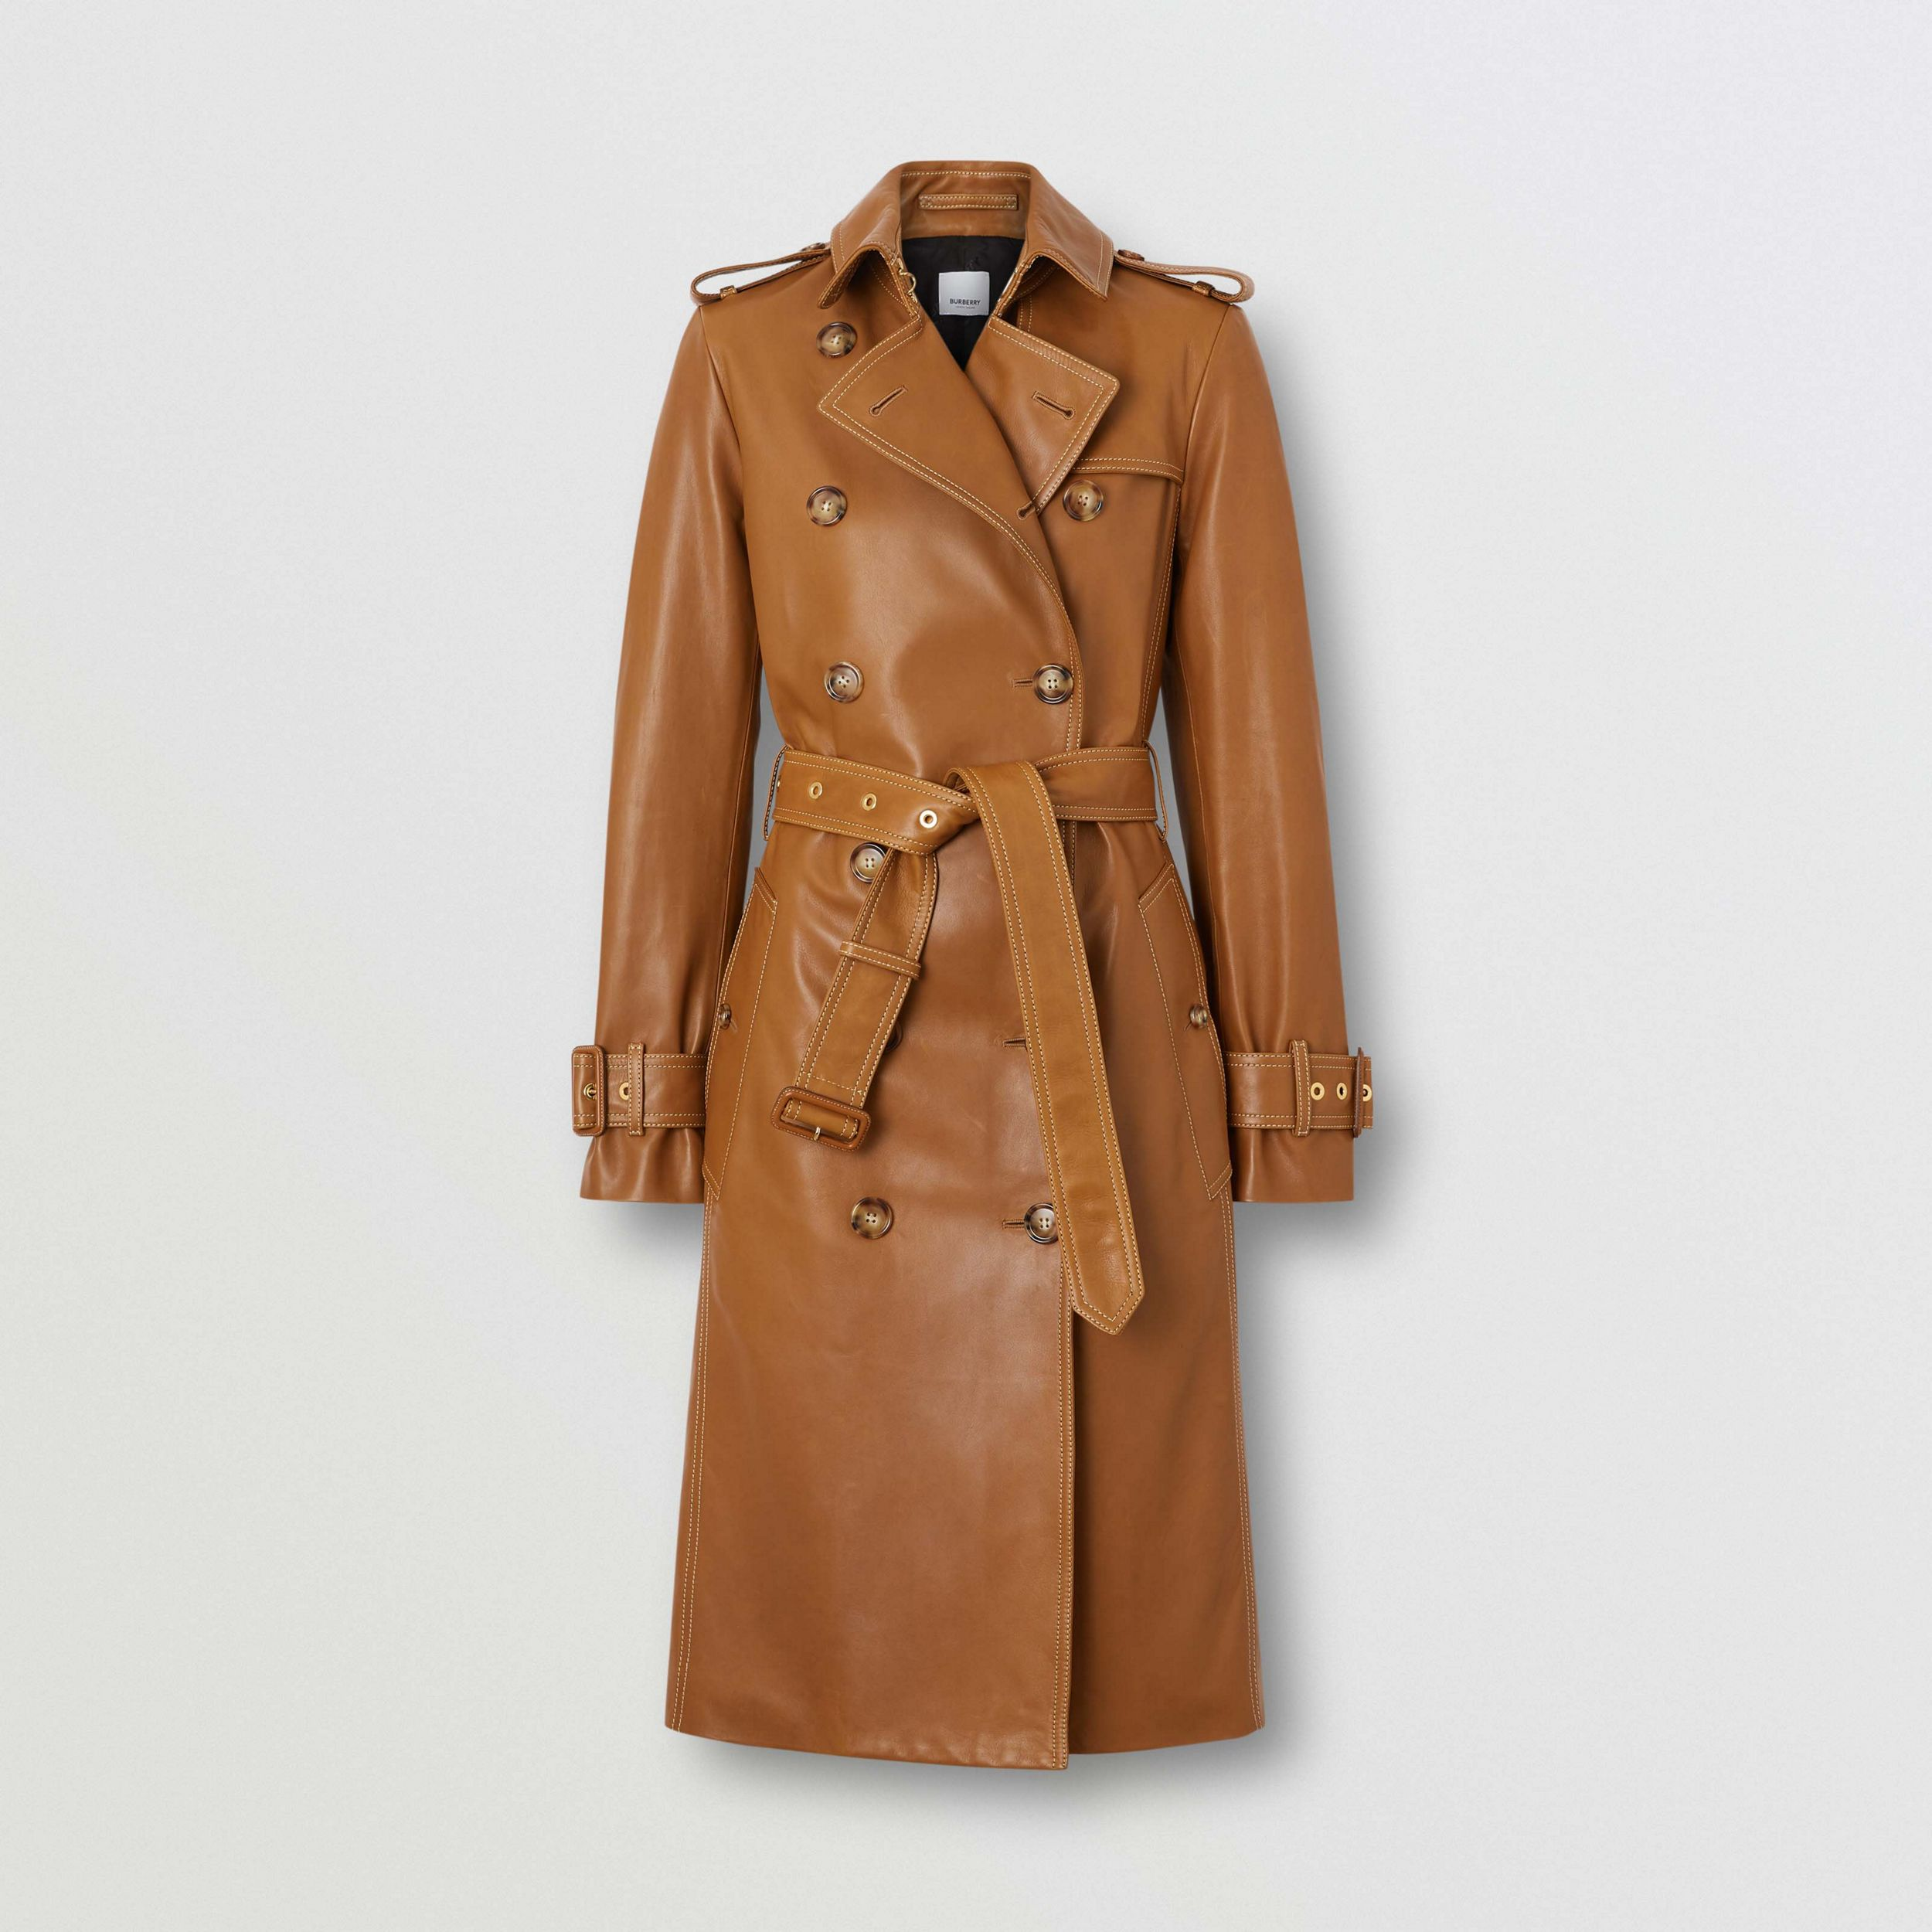 Topstitch Detail Lambskin Trench Coat in Maple - Women | Burberry - 4